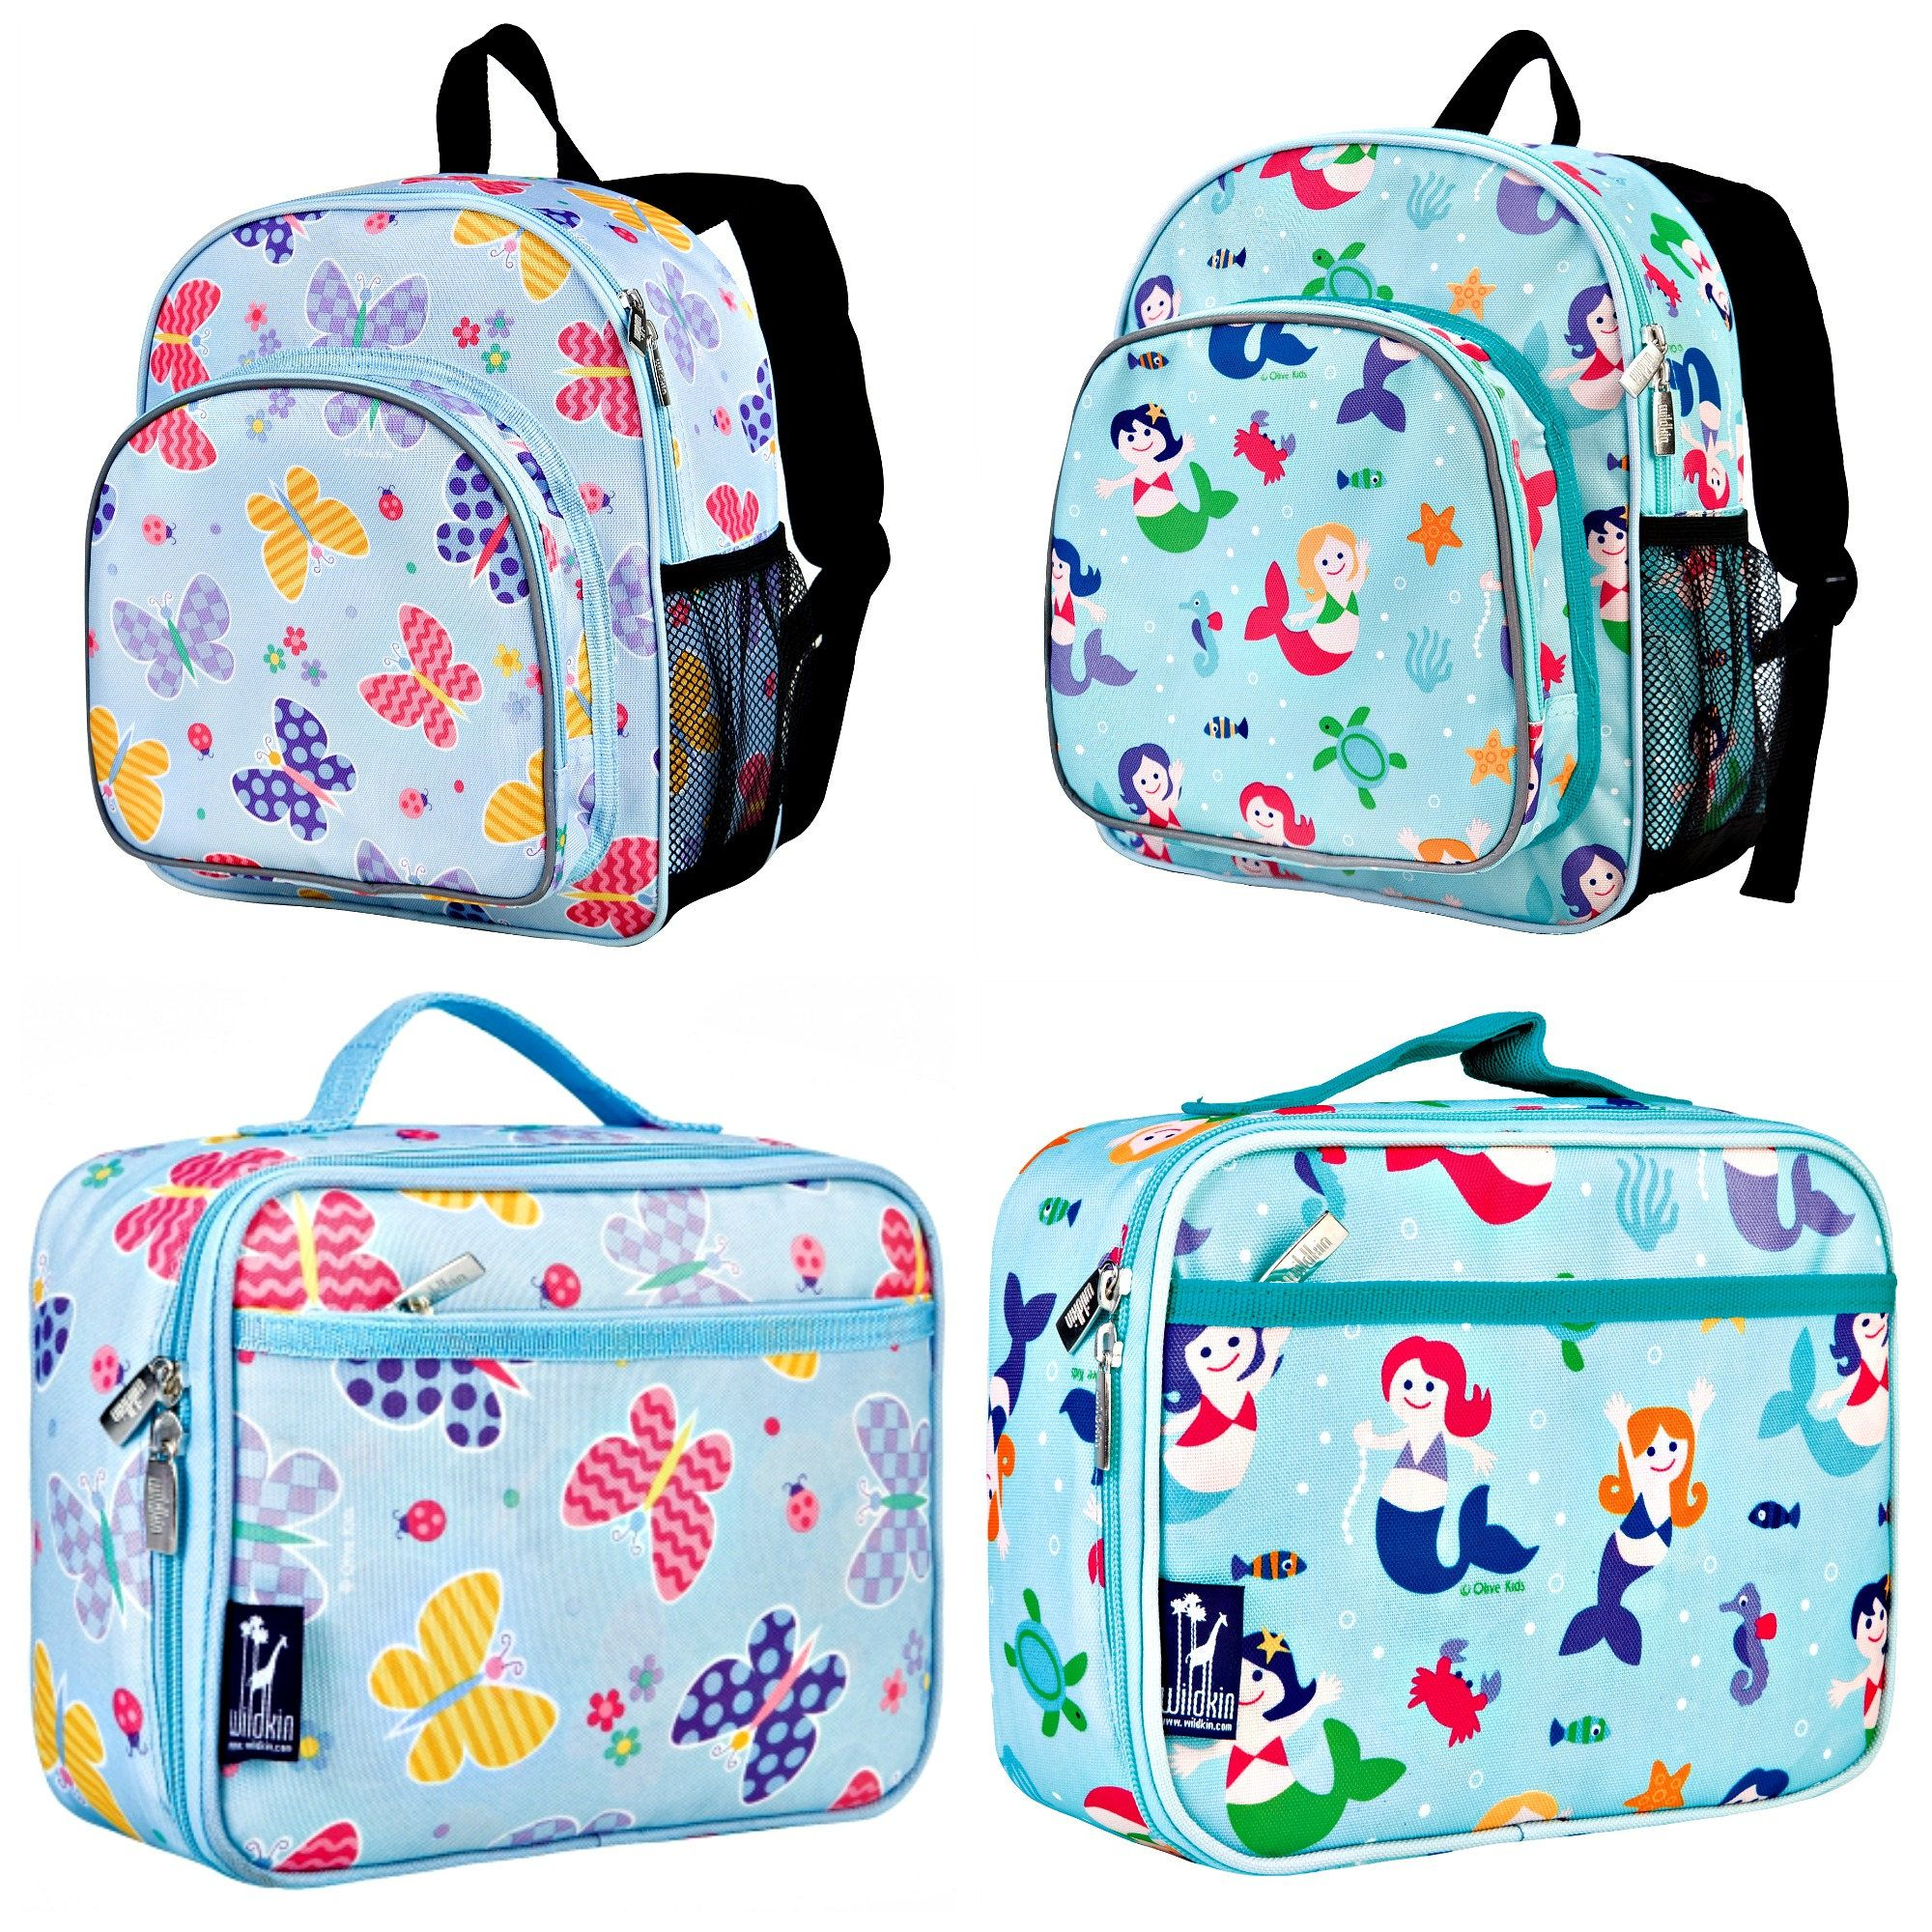 3bad6d740a51 Personalized Backpack and Lunch Box Sets